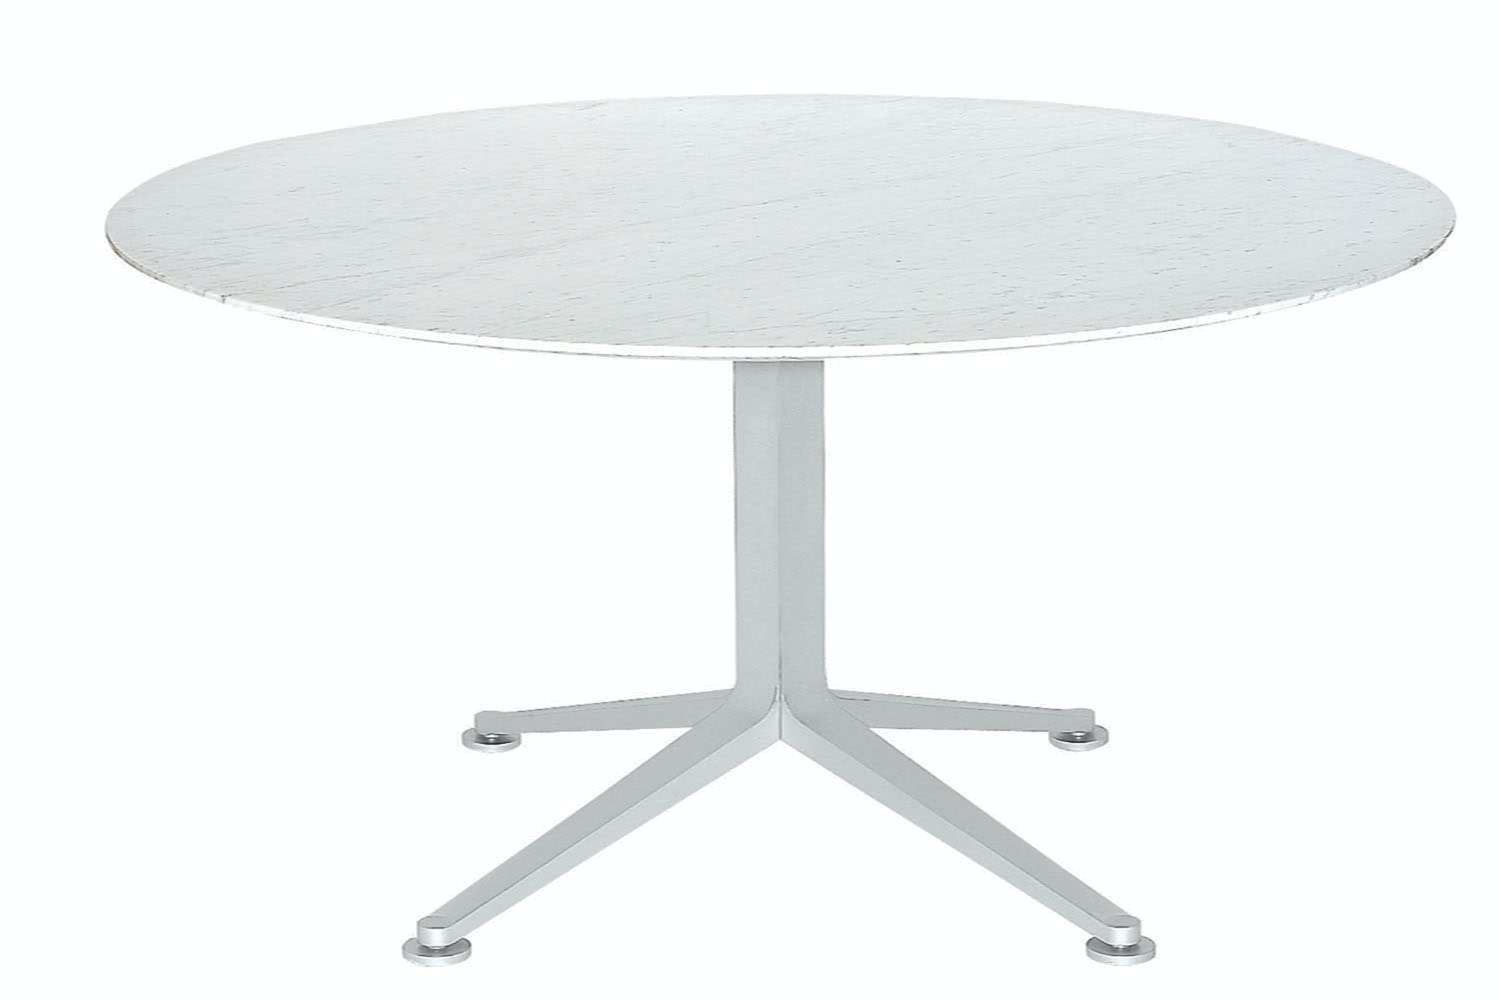 Radicequadra Extension Table by Roberto Barbieri for Zanotta